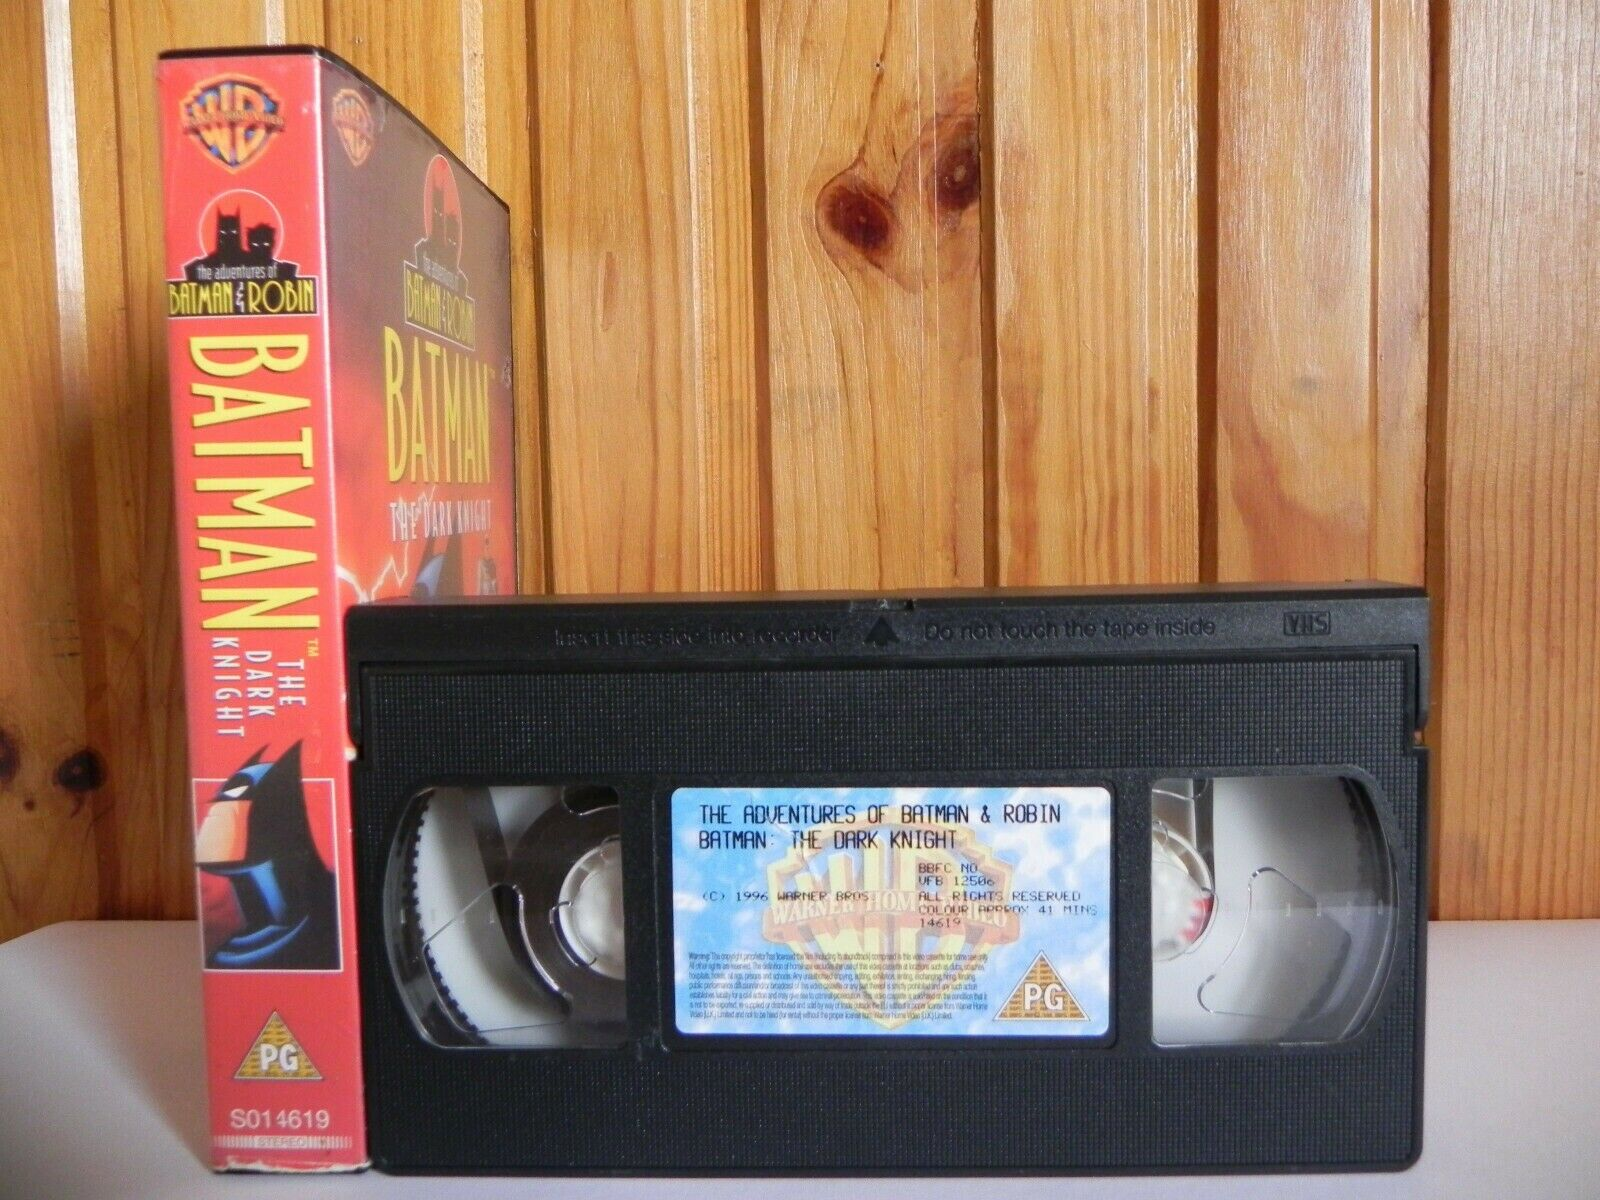 Batman: The Dark Knight - Warner - Animated - Action - Adventure - Kids - VHS